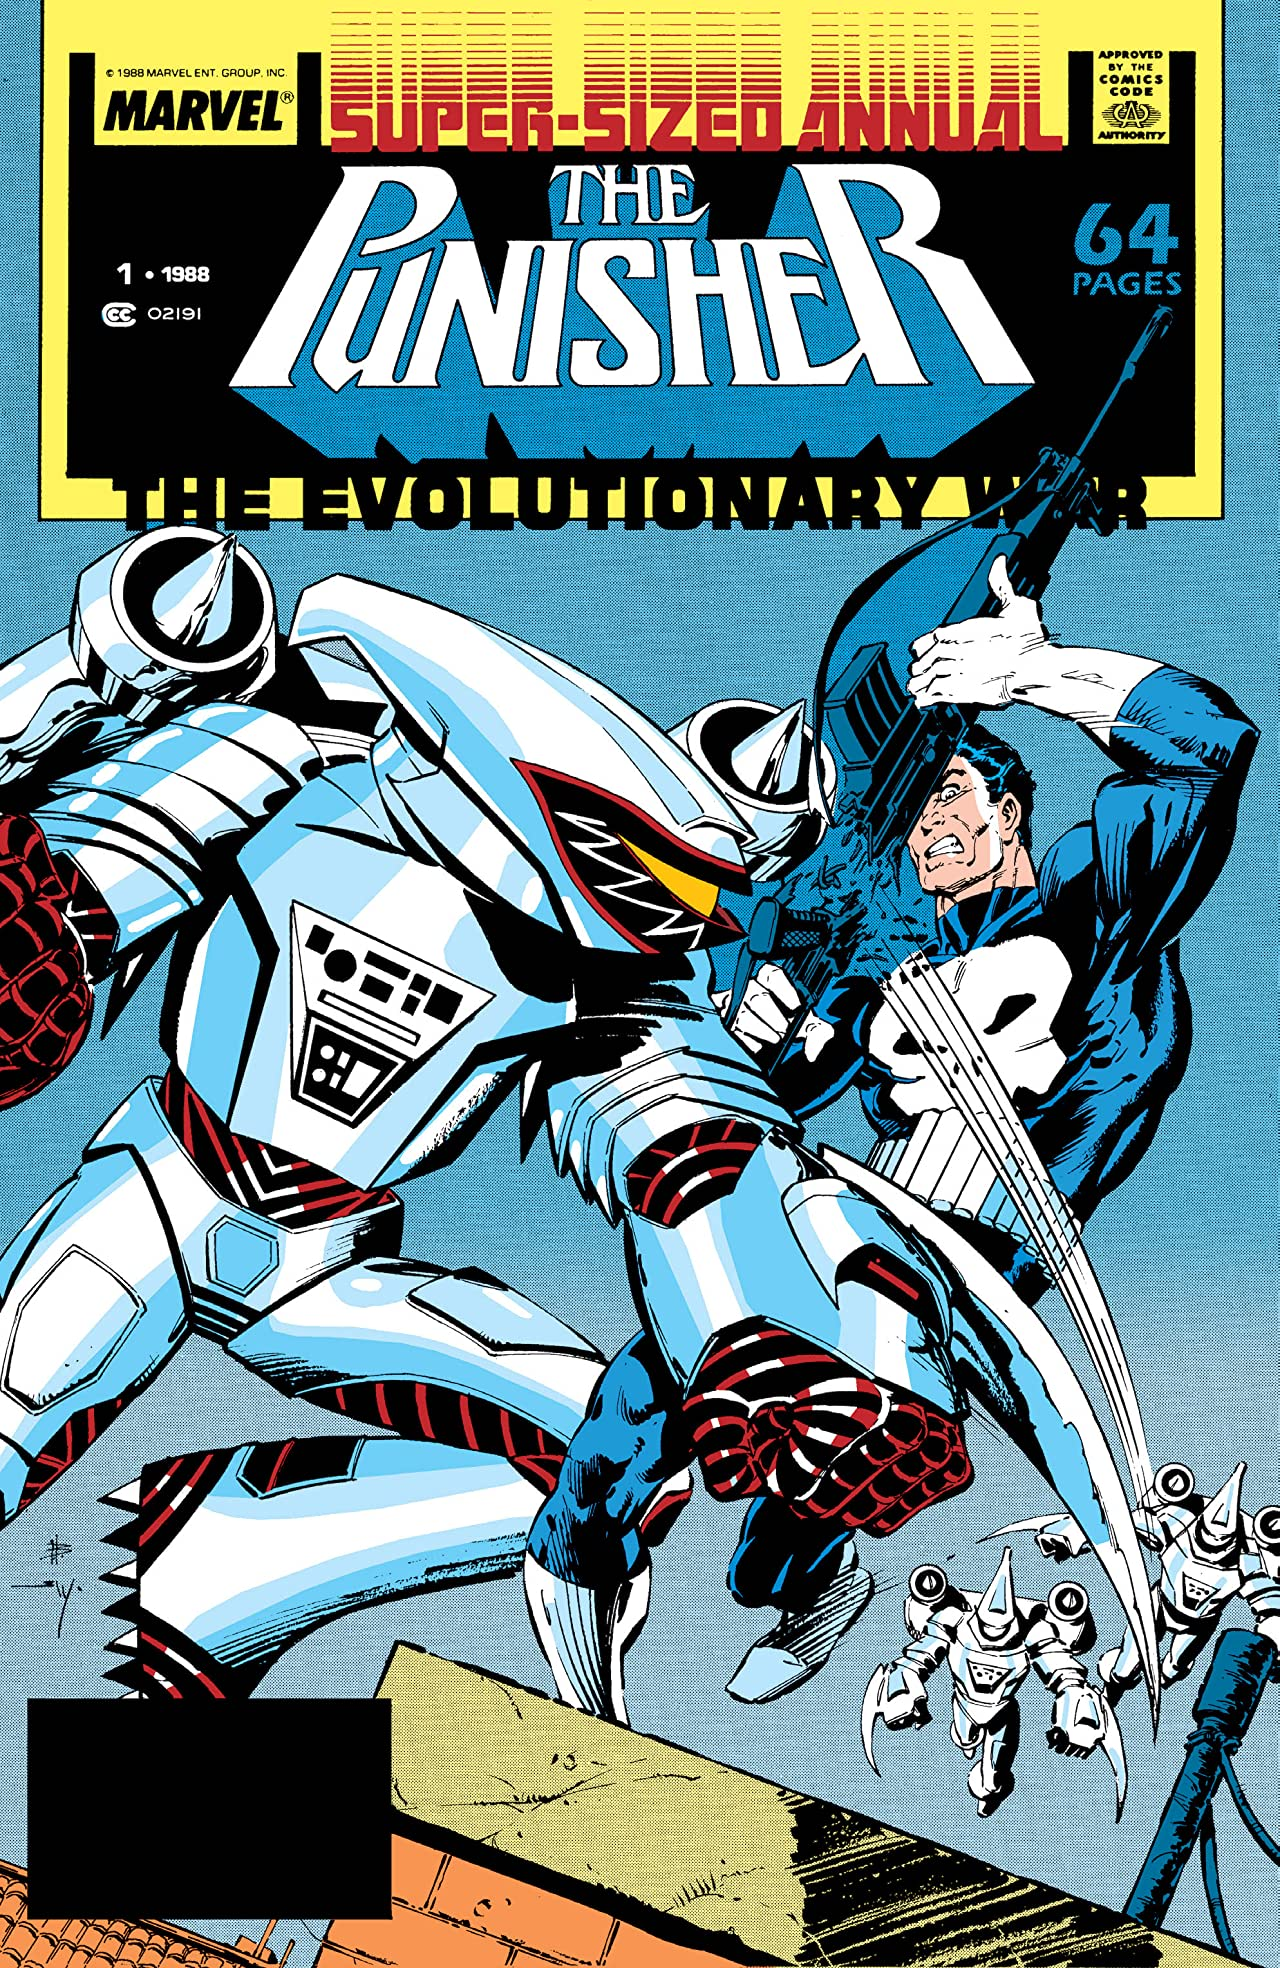 The Punisher (1987-1995) Annual #1